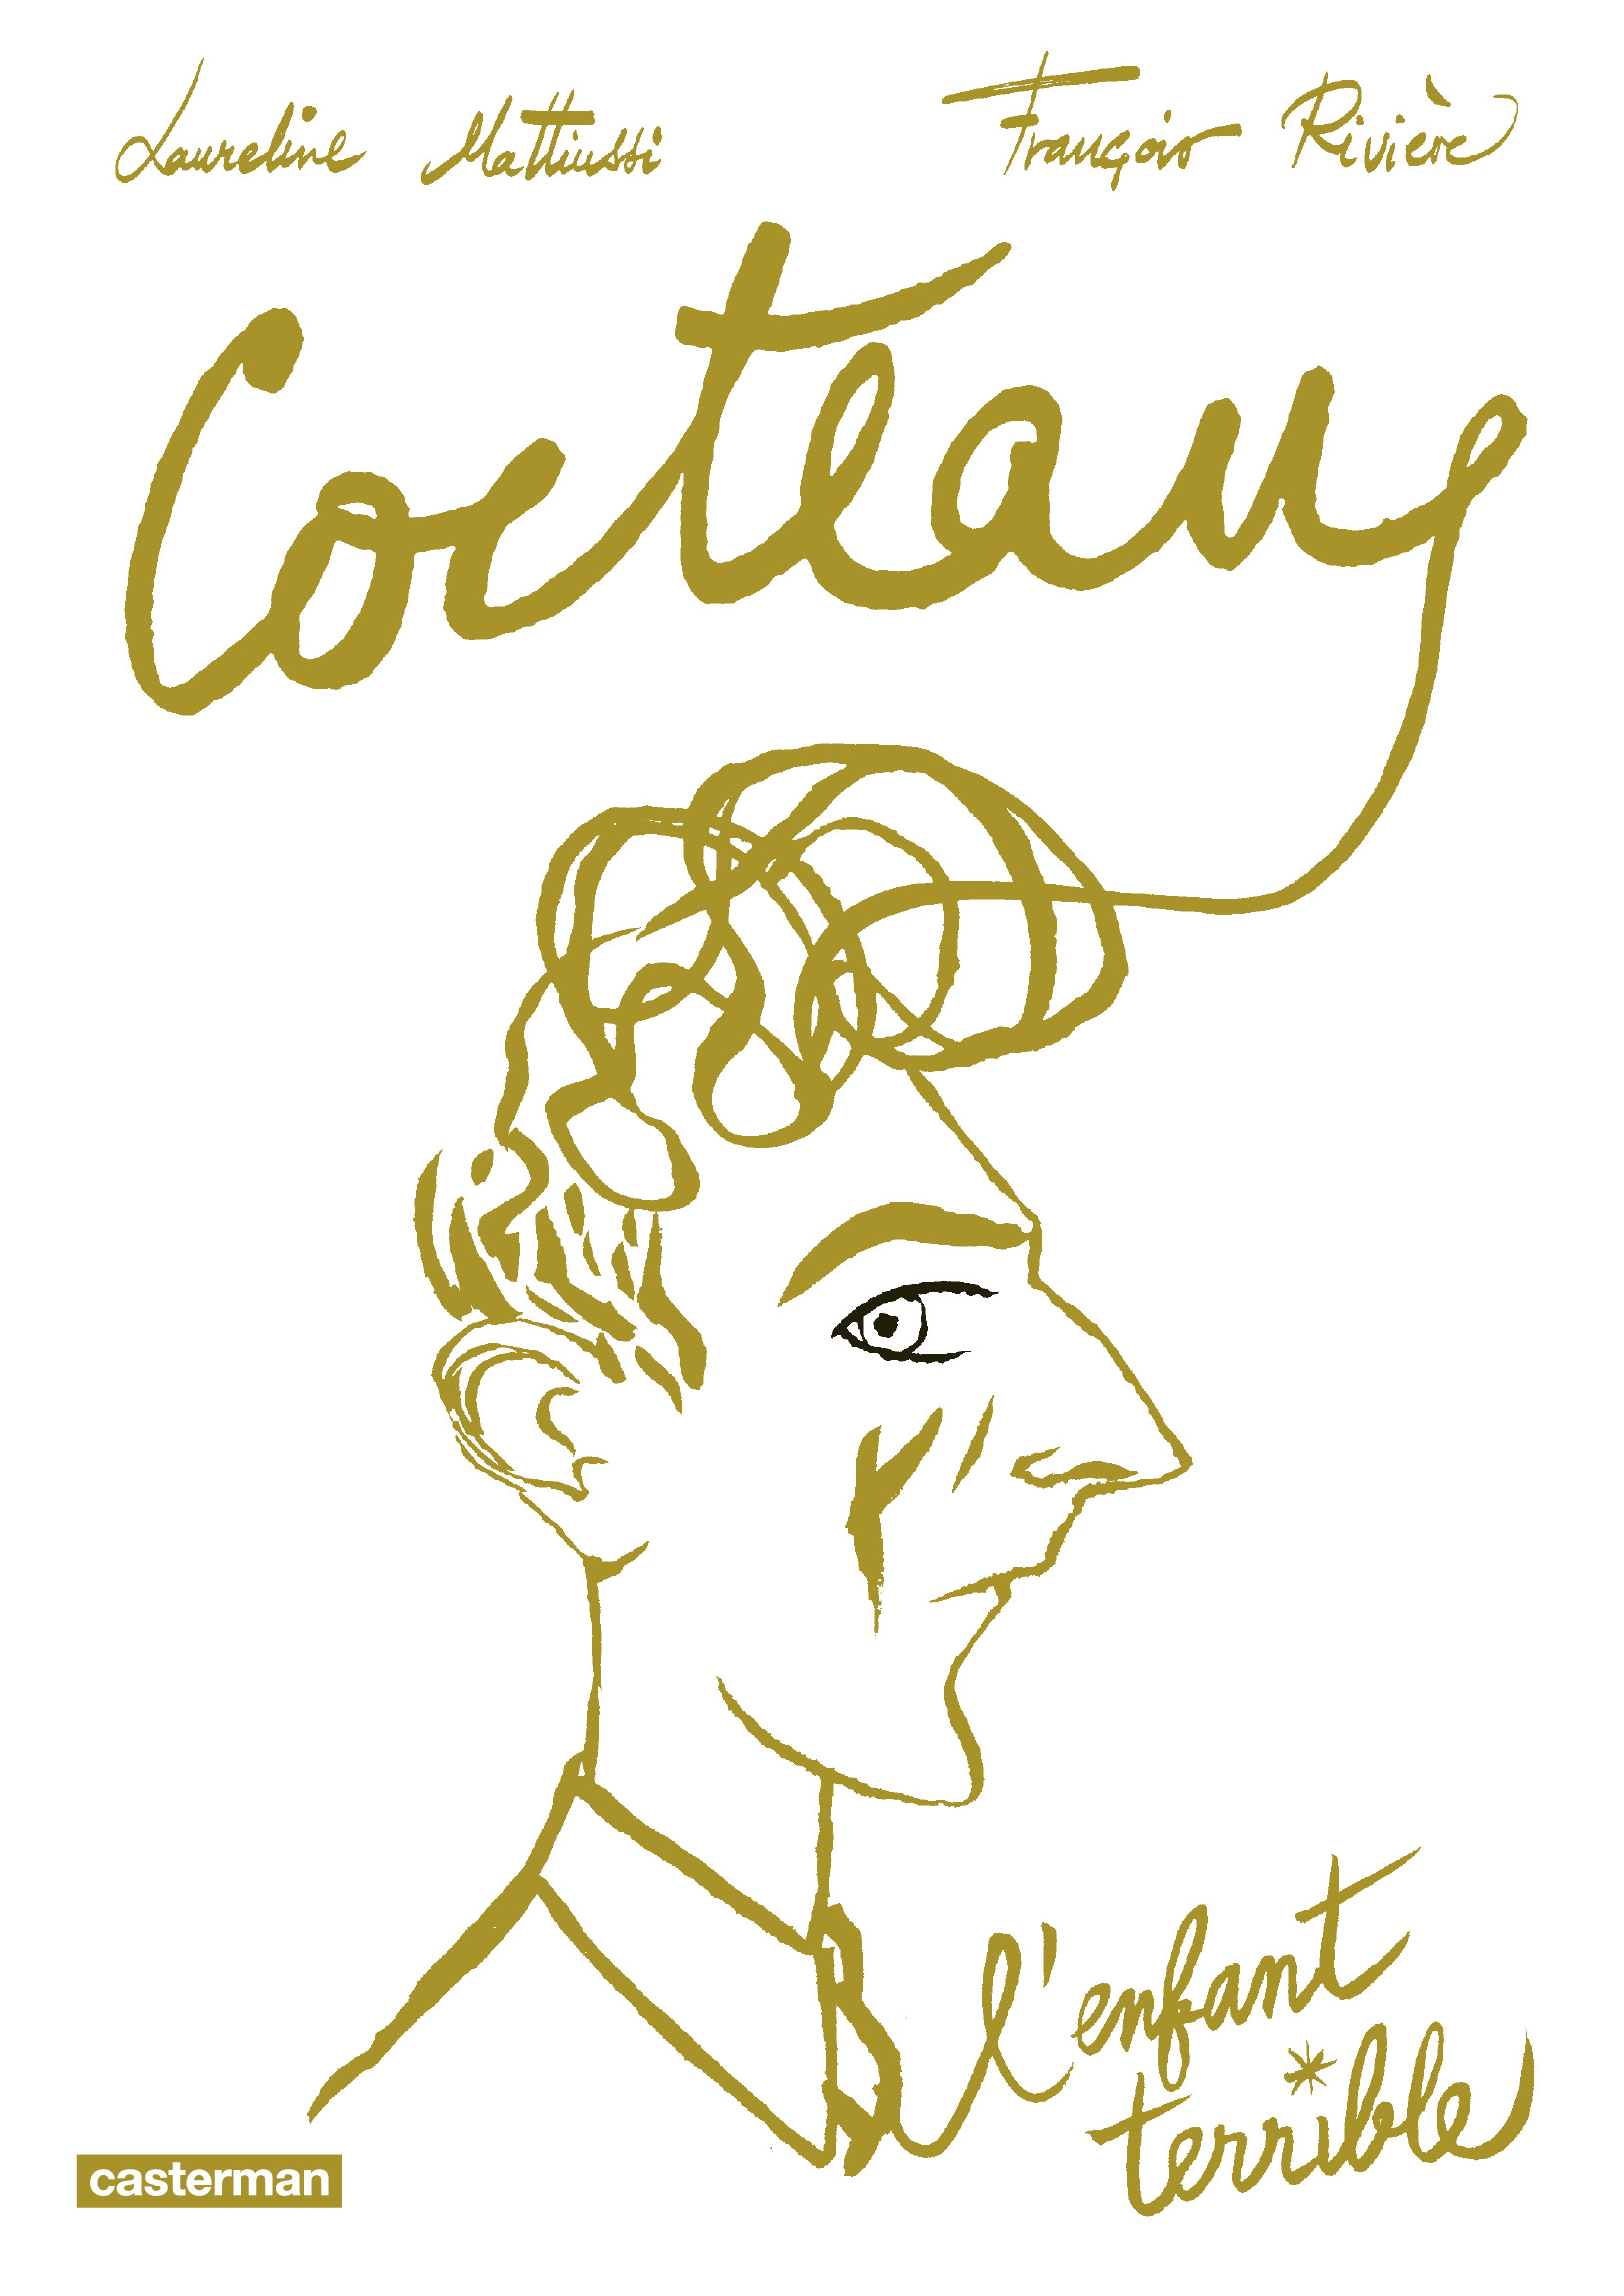 Cocteau, l'enfant terrible 1